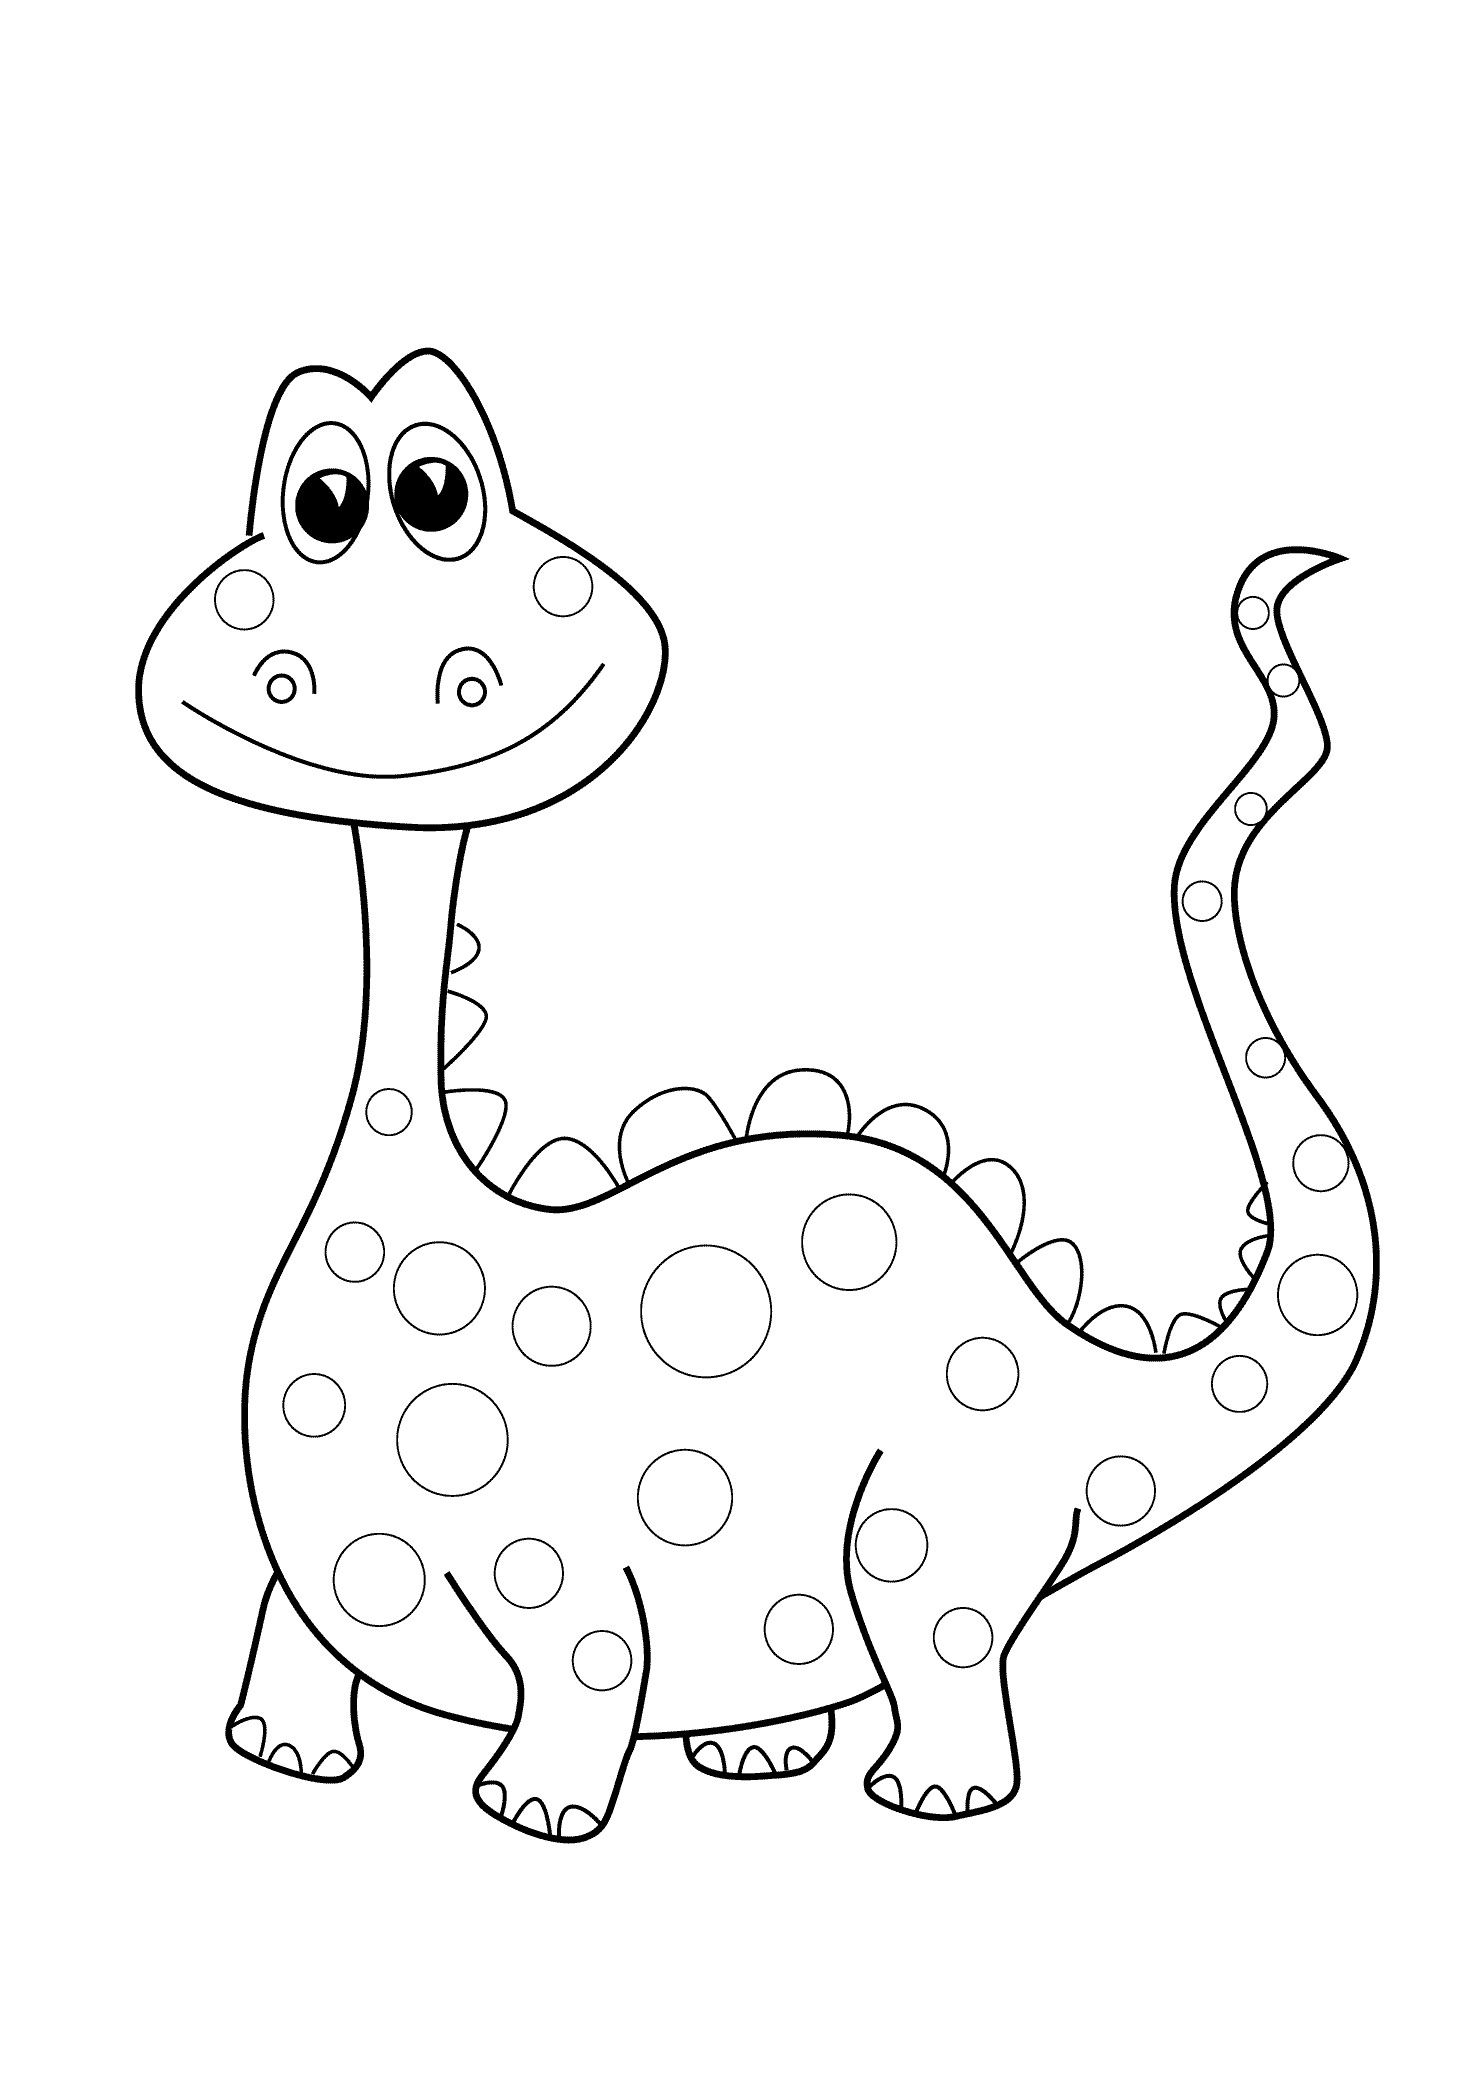 Dinosaur Coloring Pages For Kindergarten Dinosaur